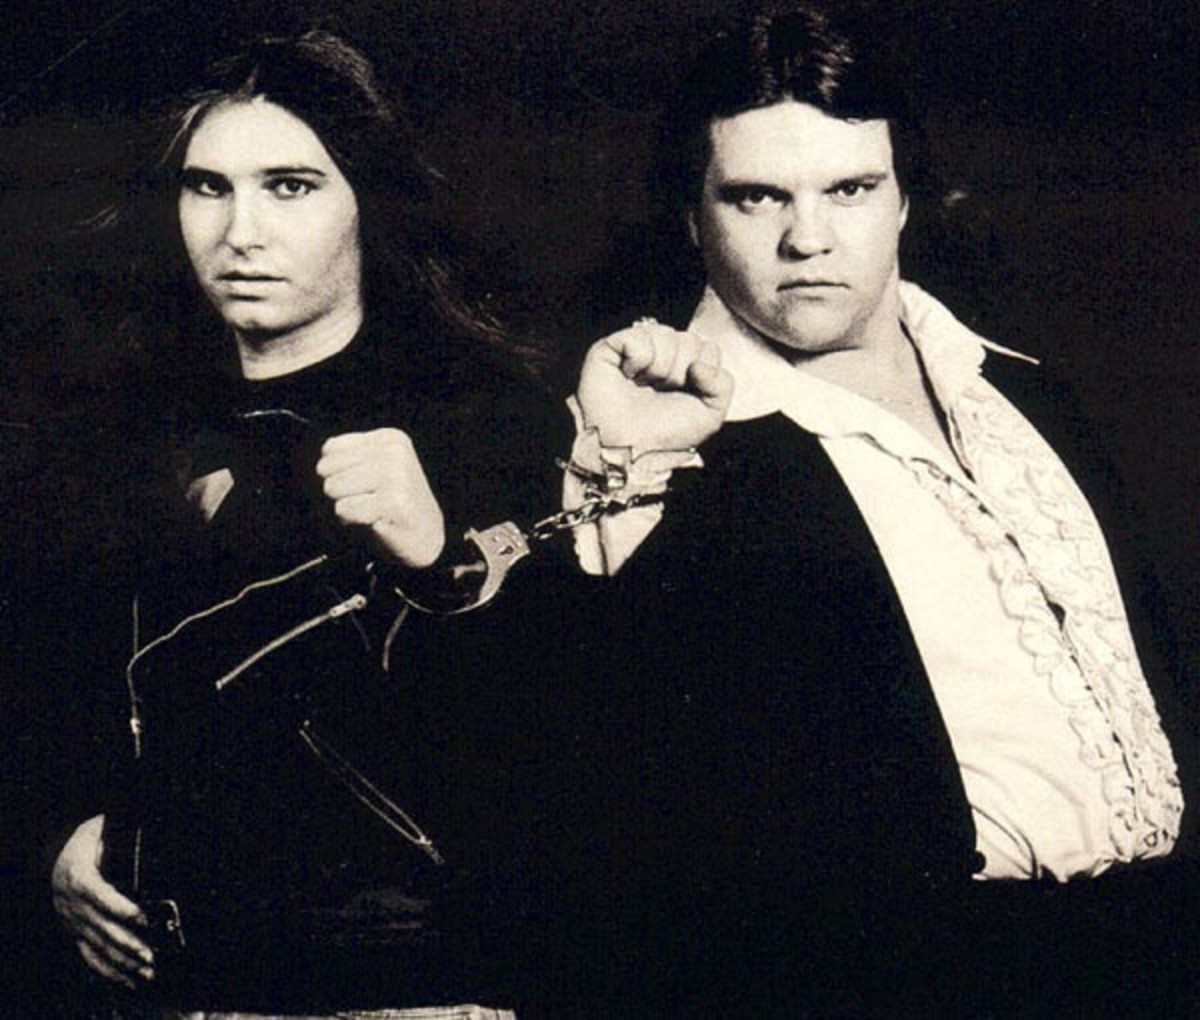 Composer Jim Steinman posing with Meat Loaf